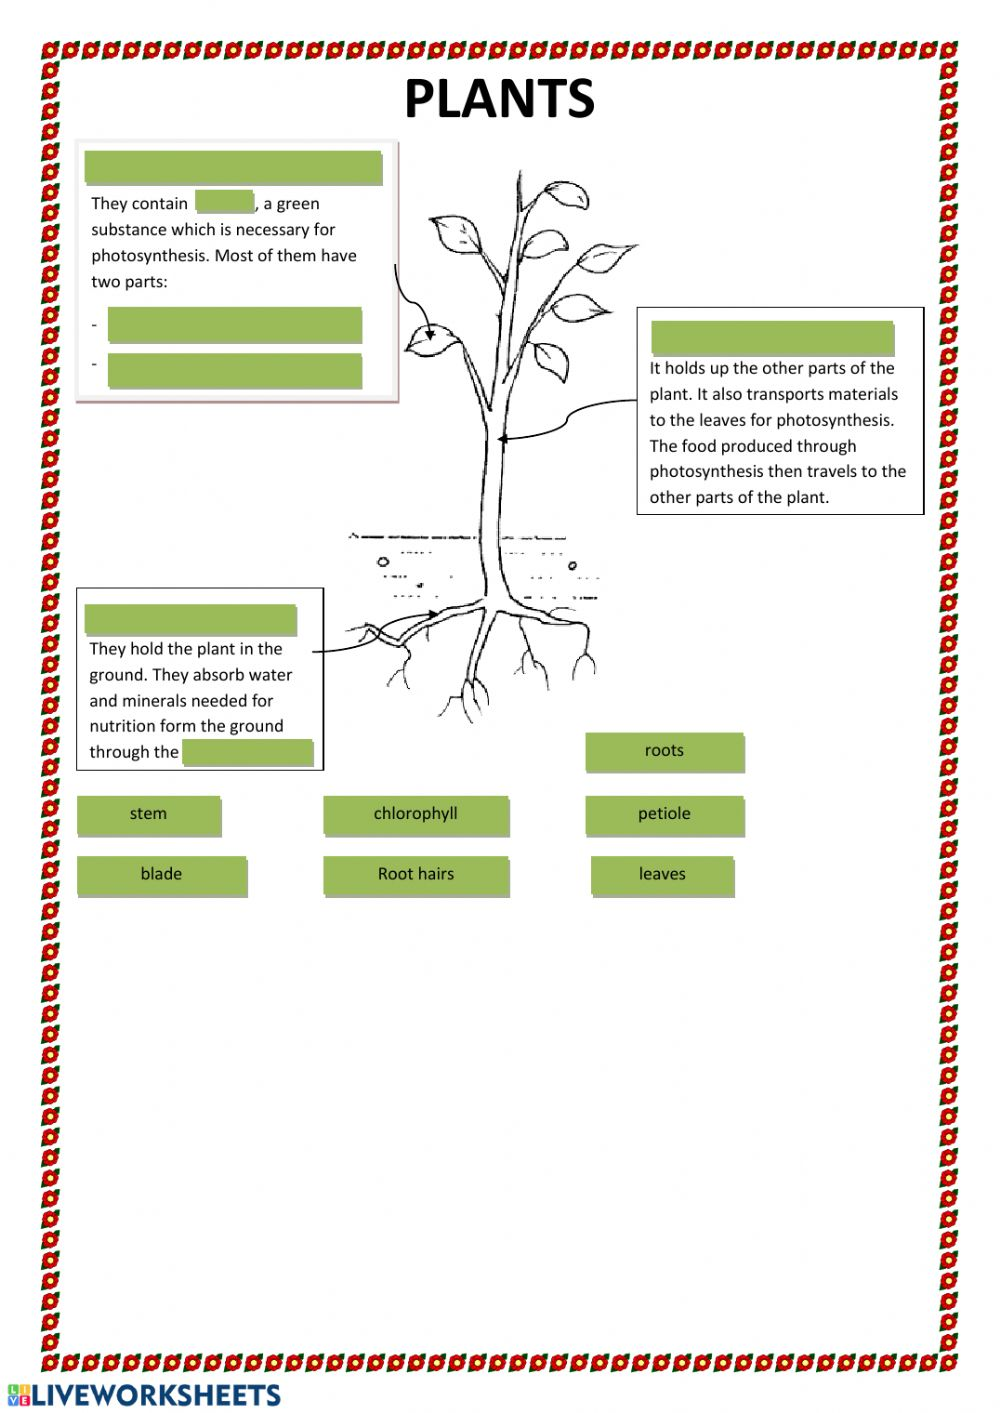 hight resolution of Parts of plants interactive worksheet